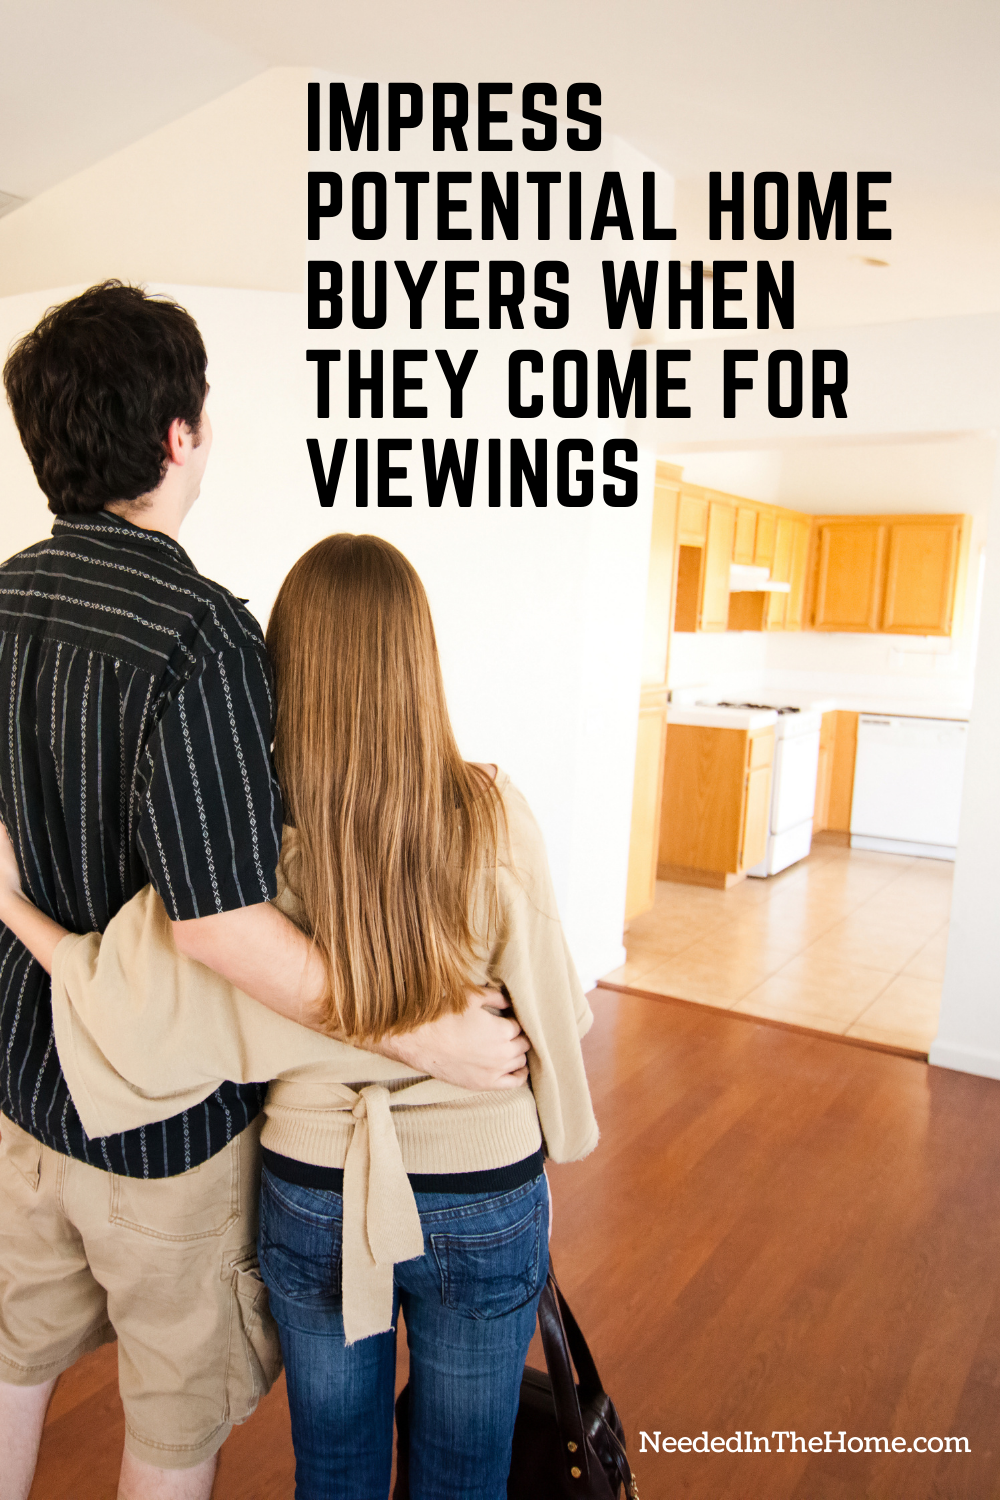 pinterest-pin-description Impress potential home buyers when they come for viewings man woman looking at home to buy kitchen living room neededinthehome